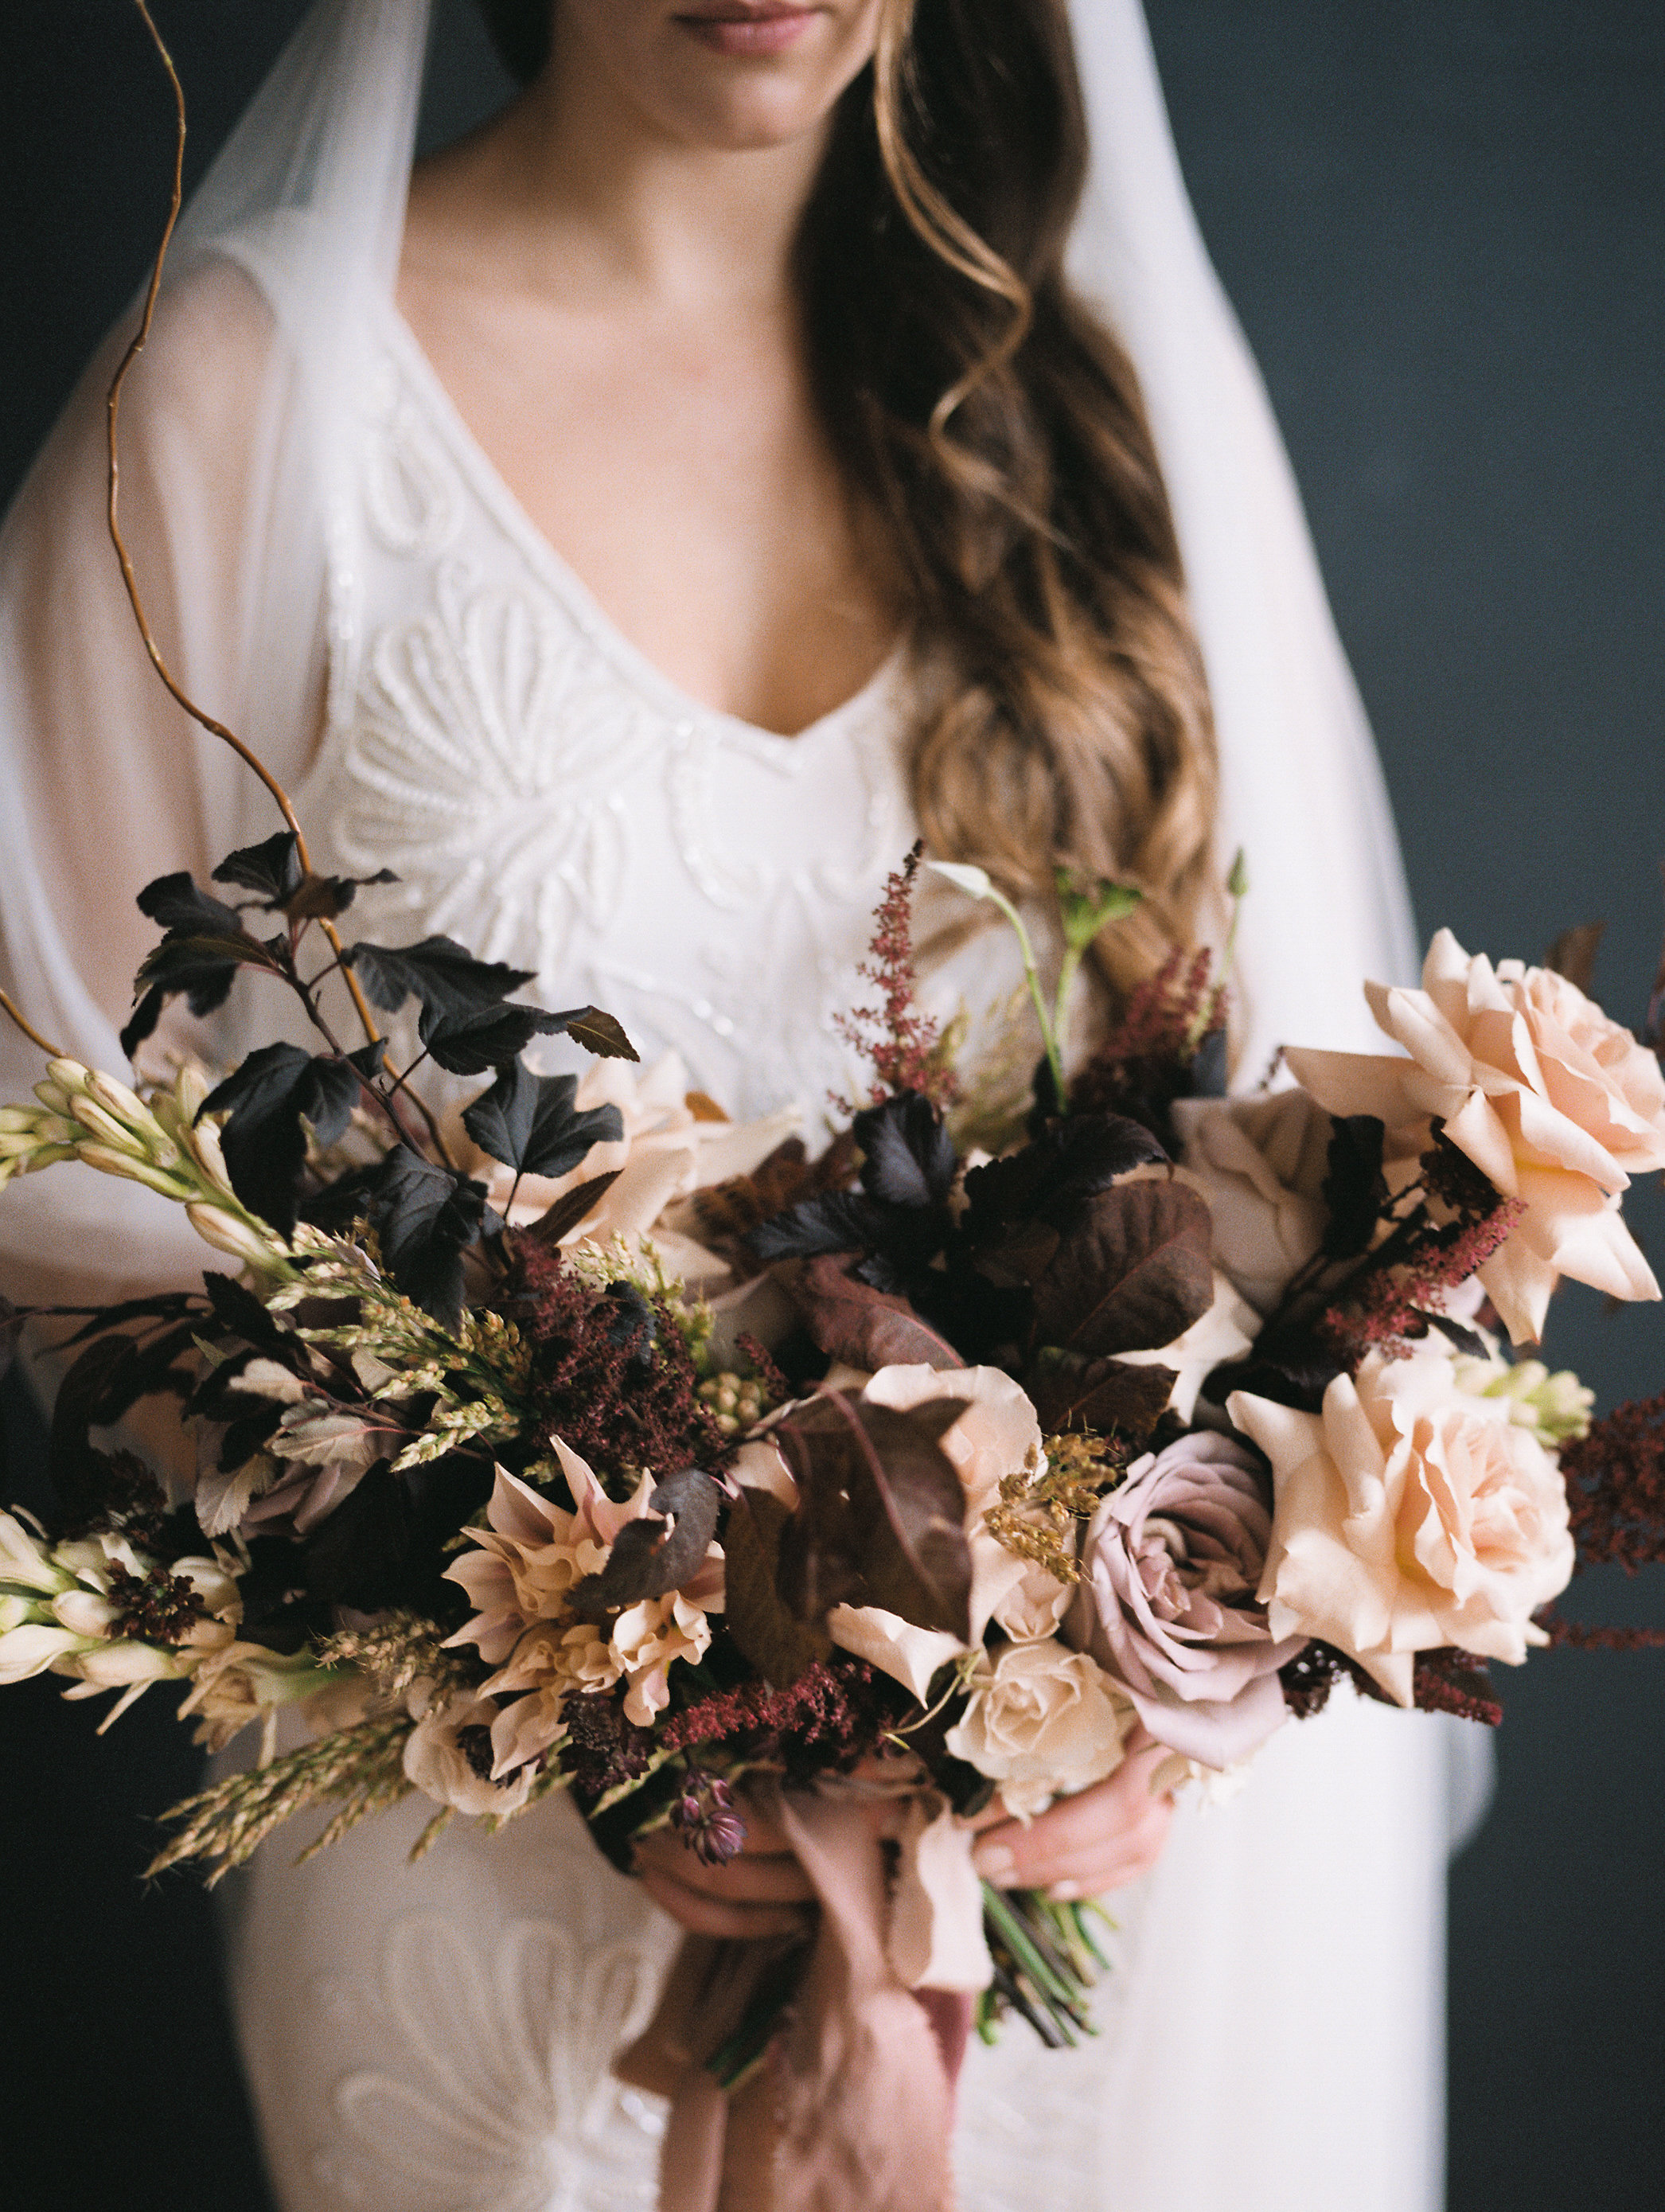 WHEN-SHE-KNEW-PHOTOGRAPHY-STYLED-WEDDING-EDITORIAL-OREGON-50.jpg